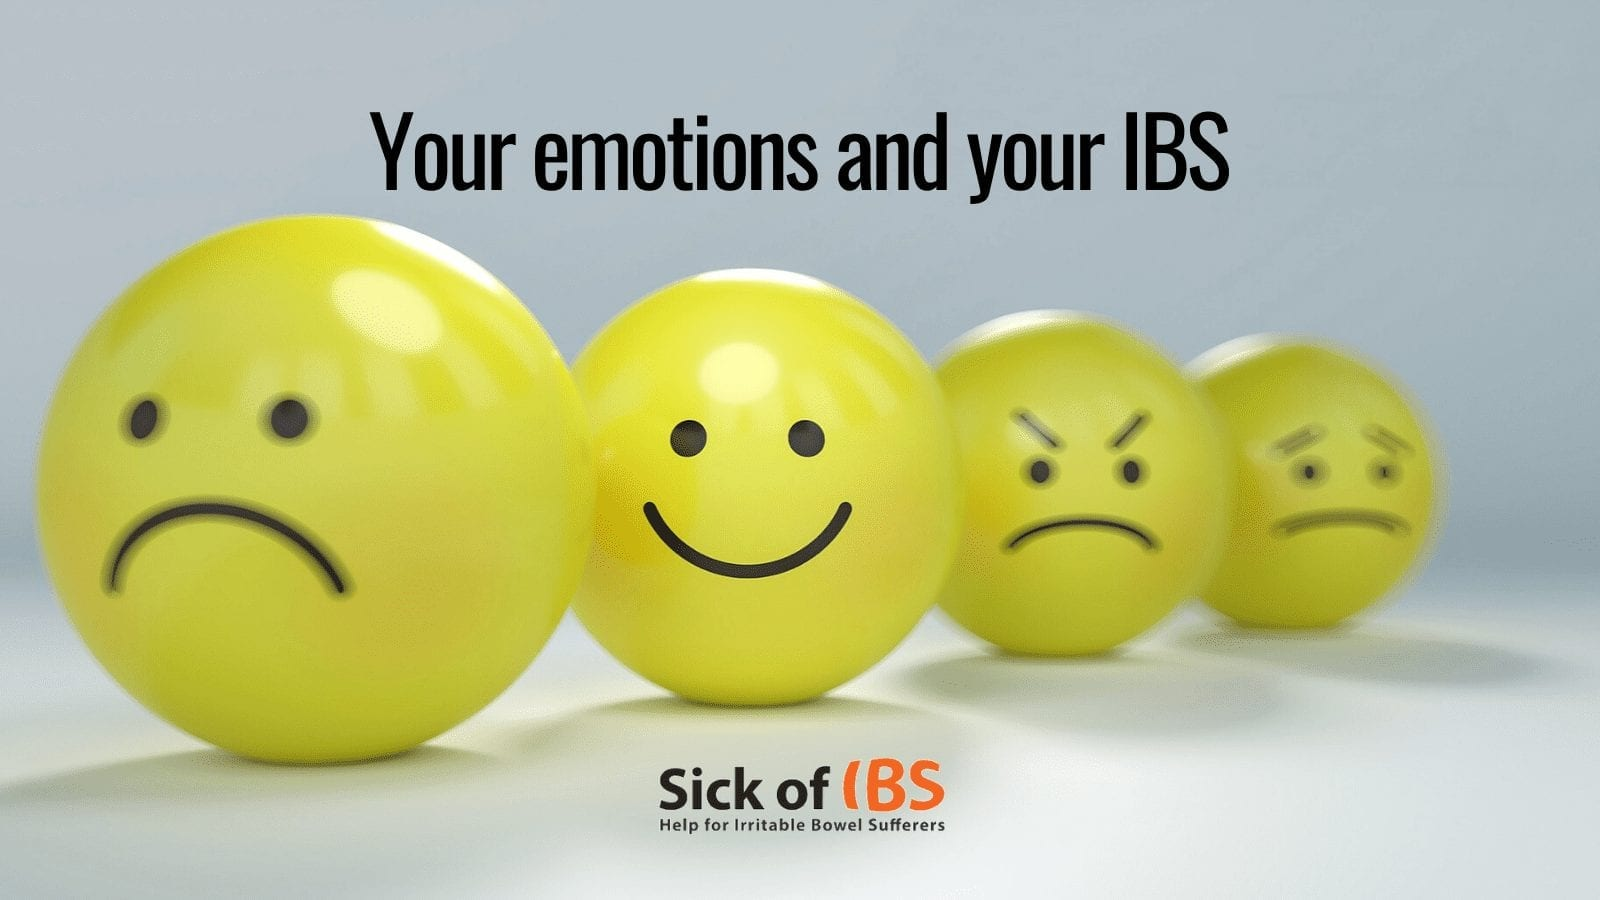 Your emotions and IBS